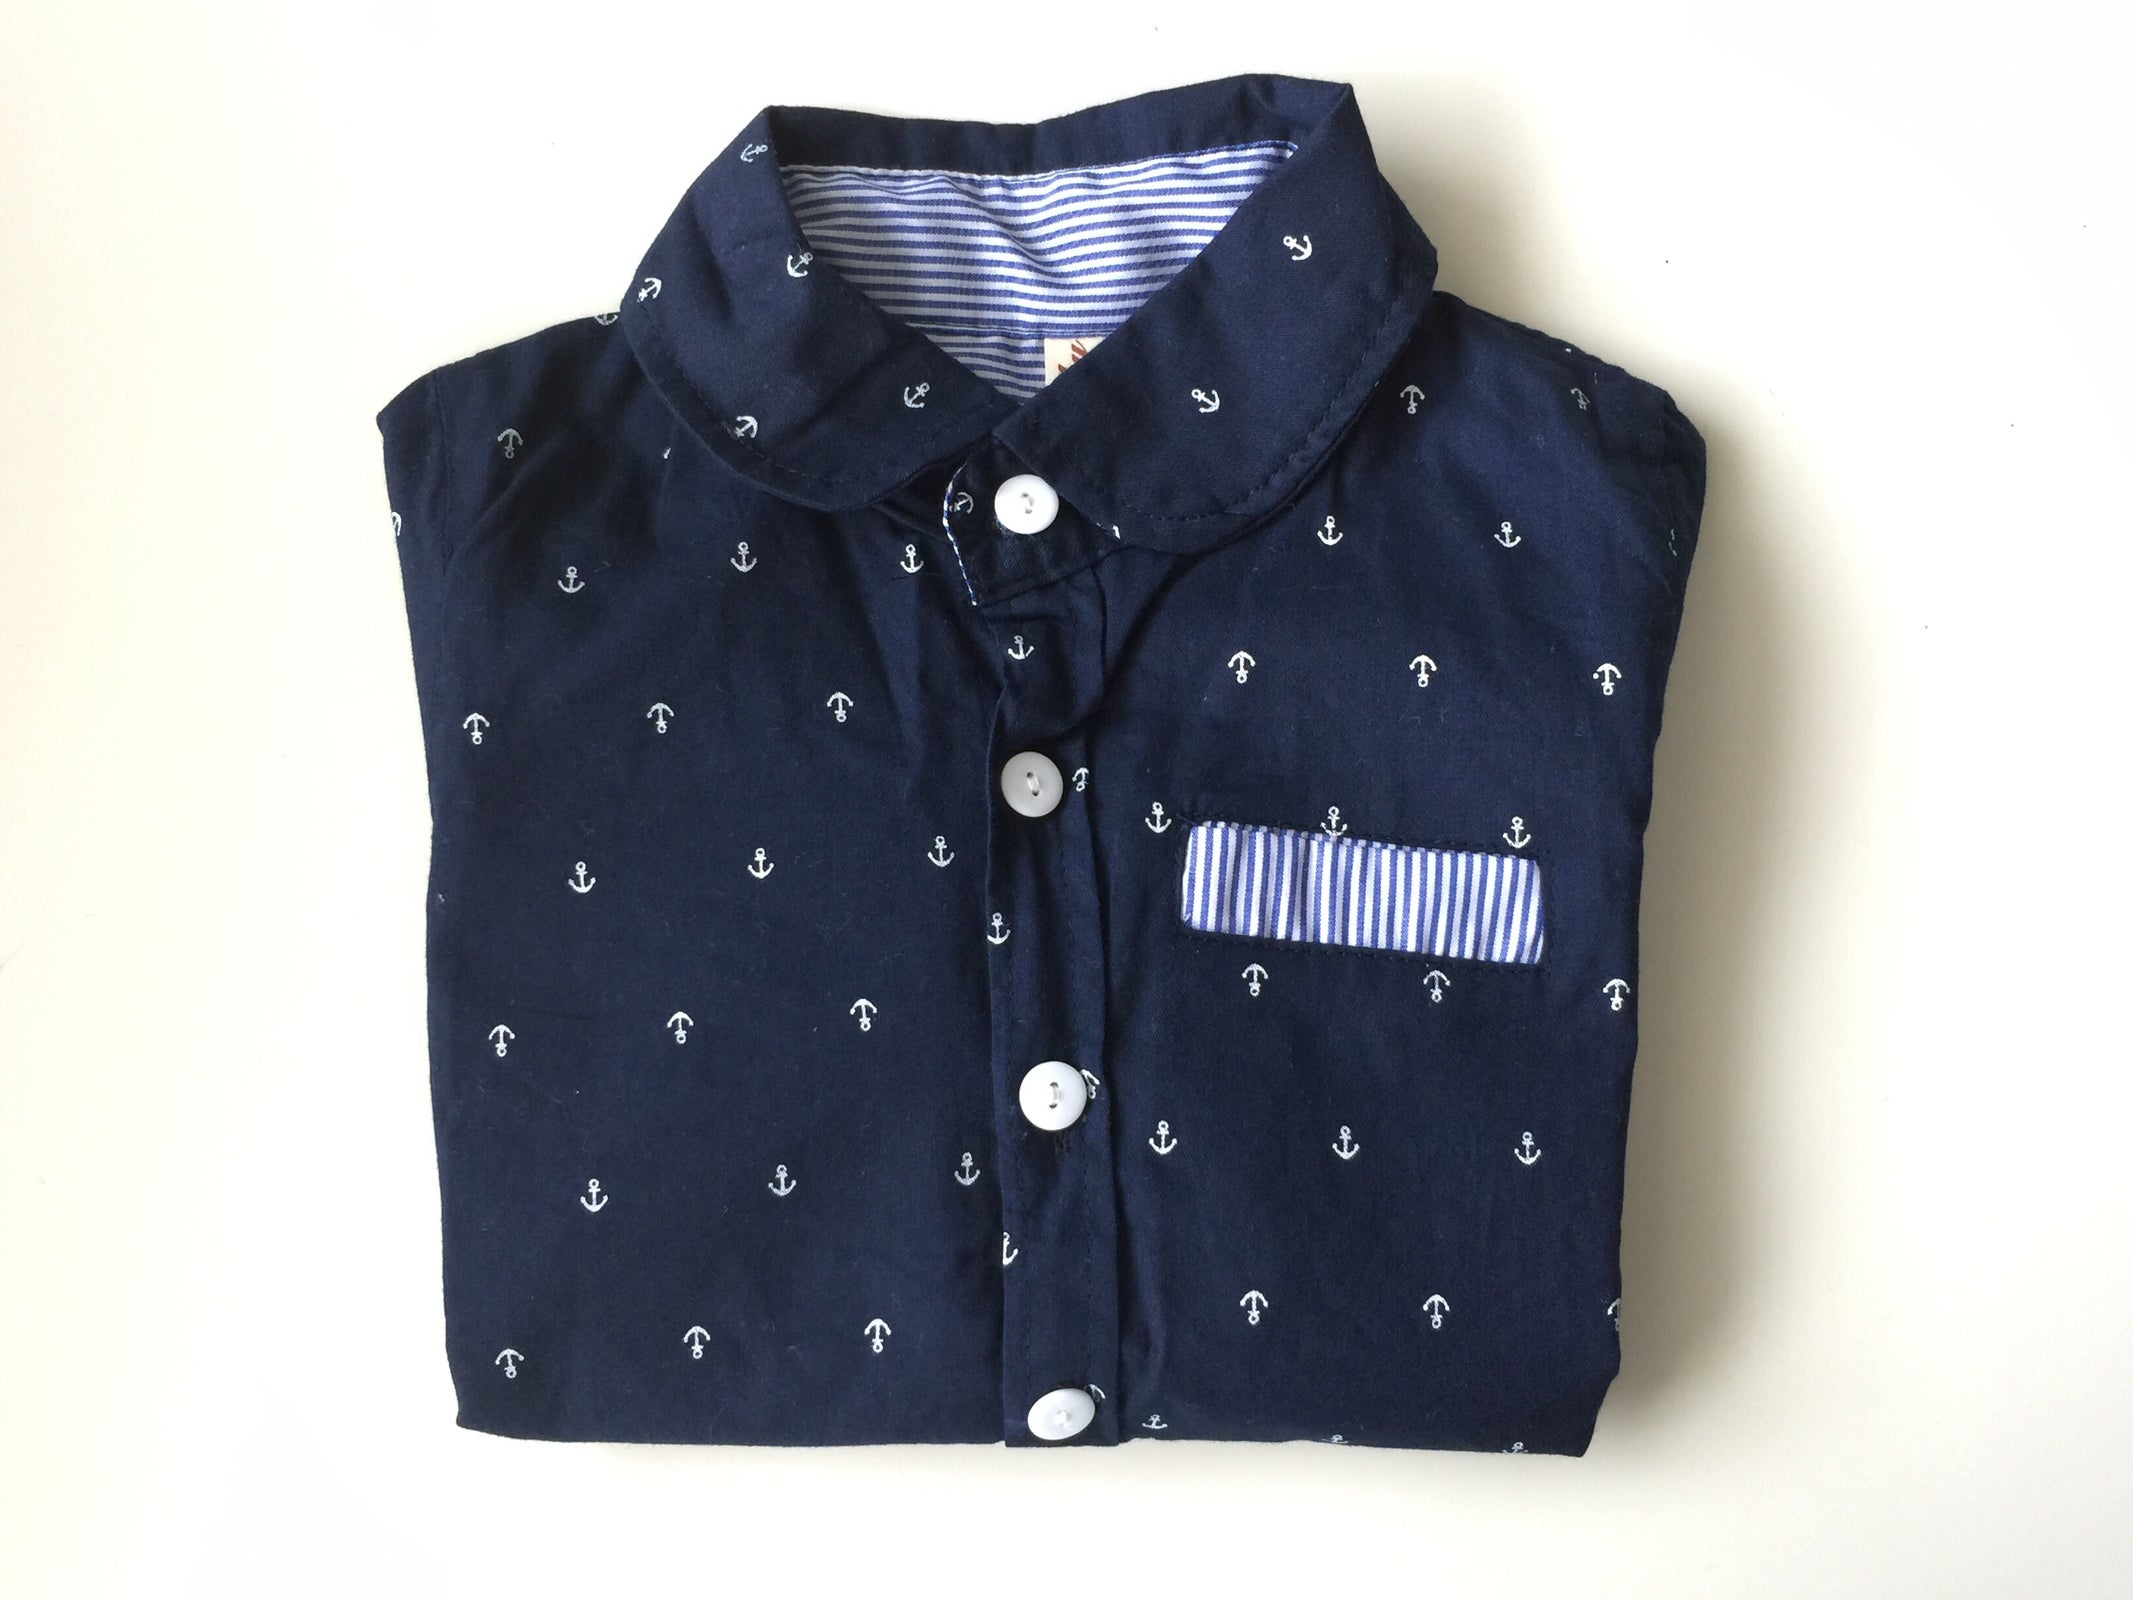 ... Couture AU — |||| IN STOCK |||| Boys' Anchor'd Dress Shirt (2-6